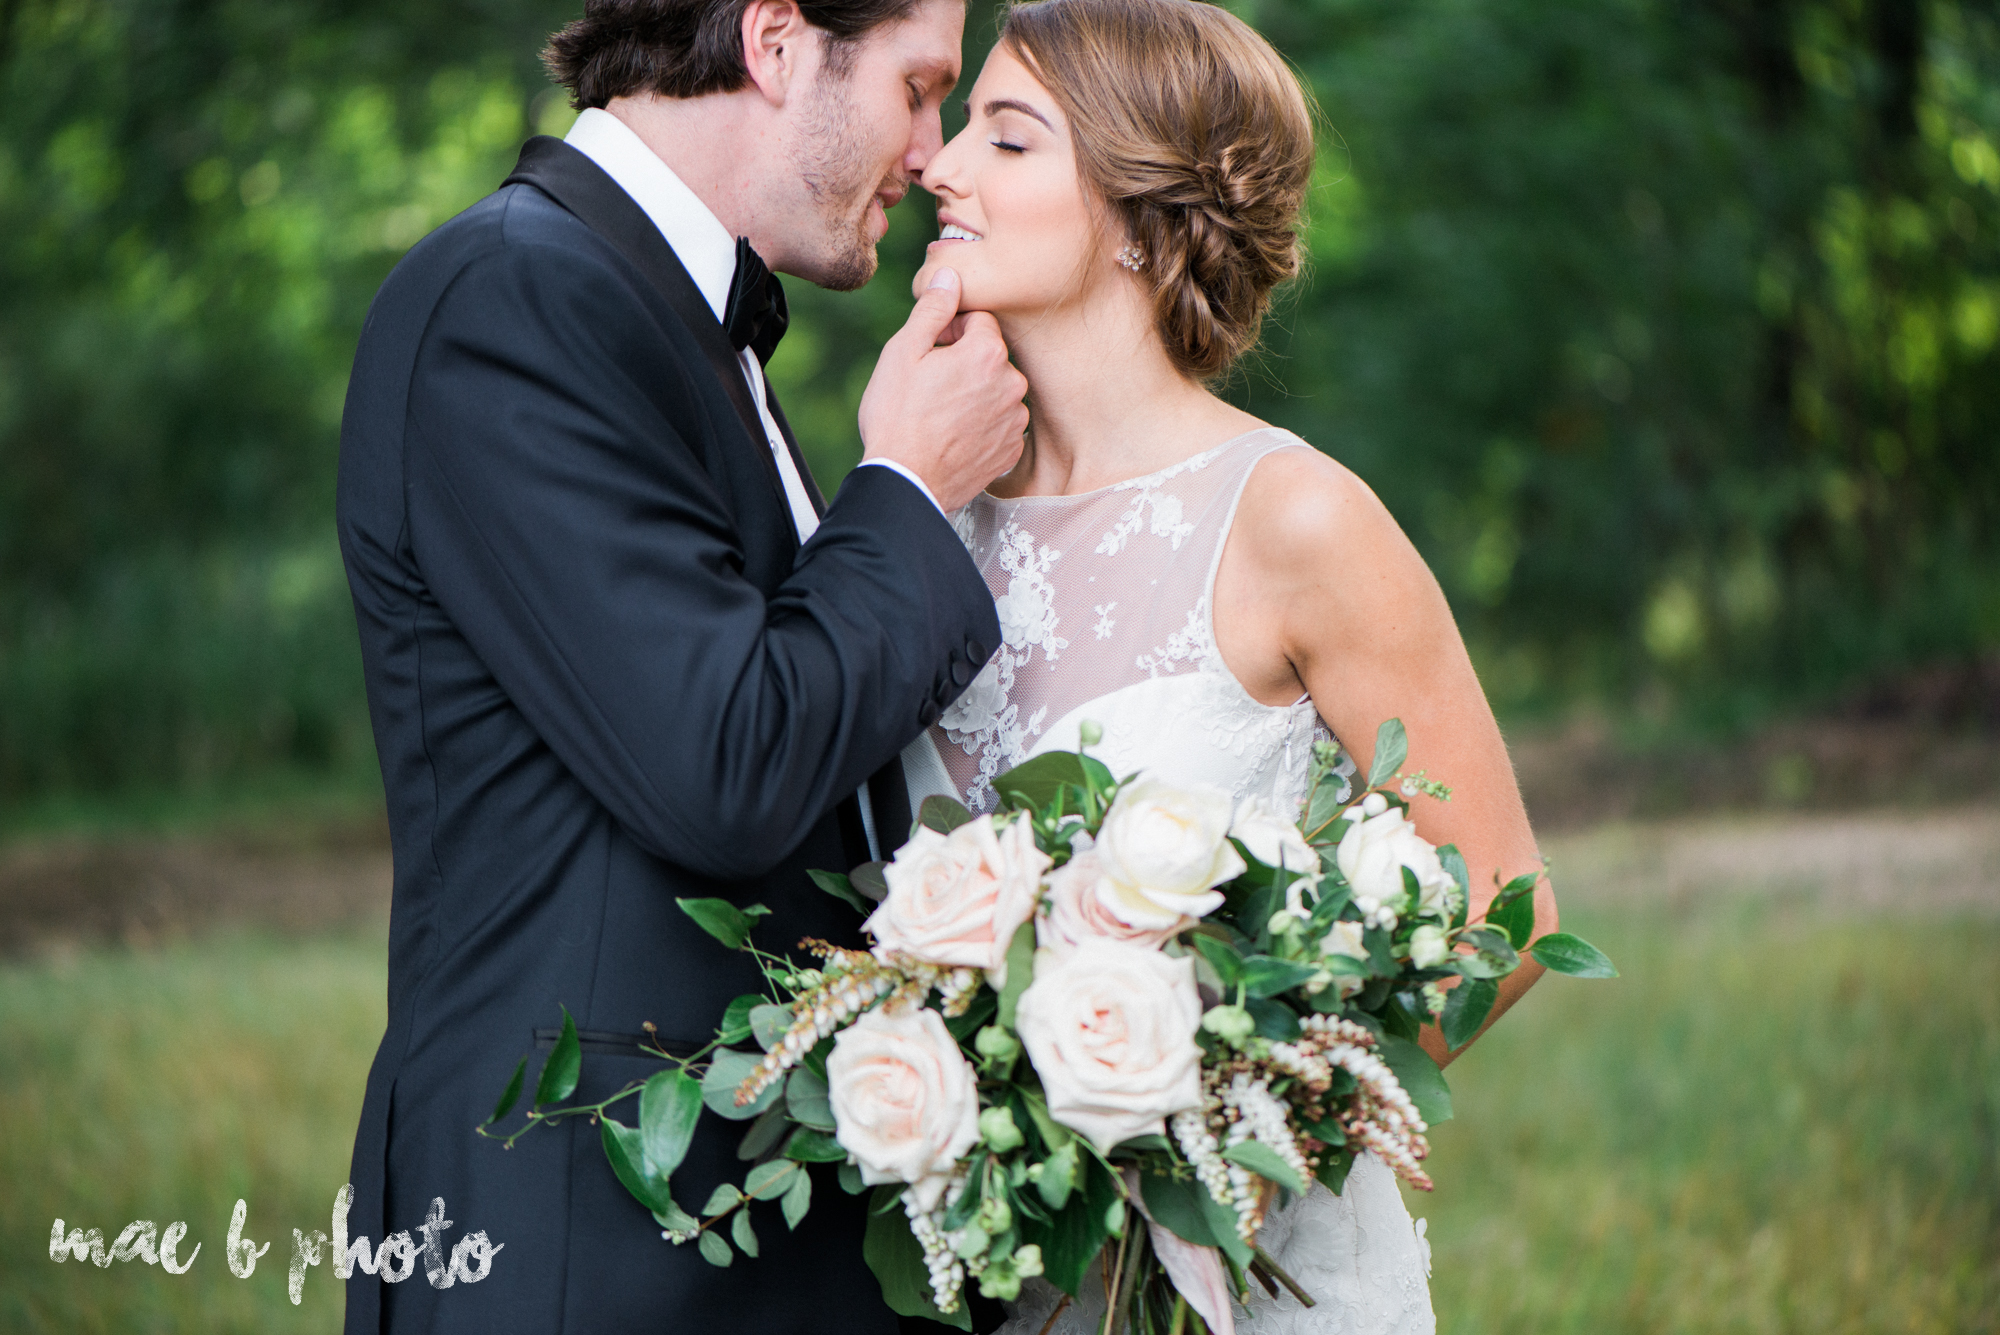 classic romantic summer wedding shoot at the mooreland mansion in cleveland ohio photographed by youngstown wedding photographer mae b photo-63.jpg